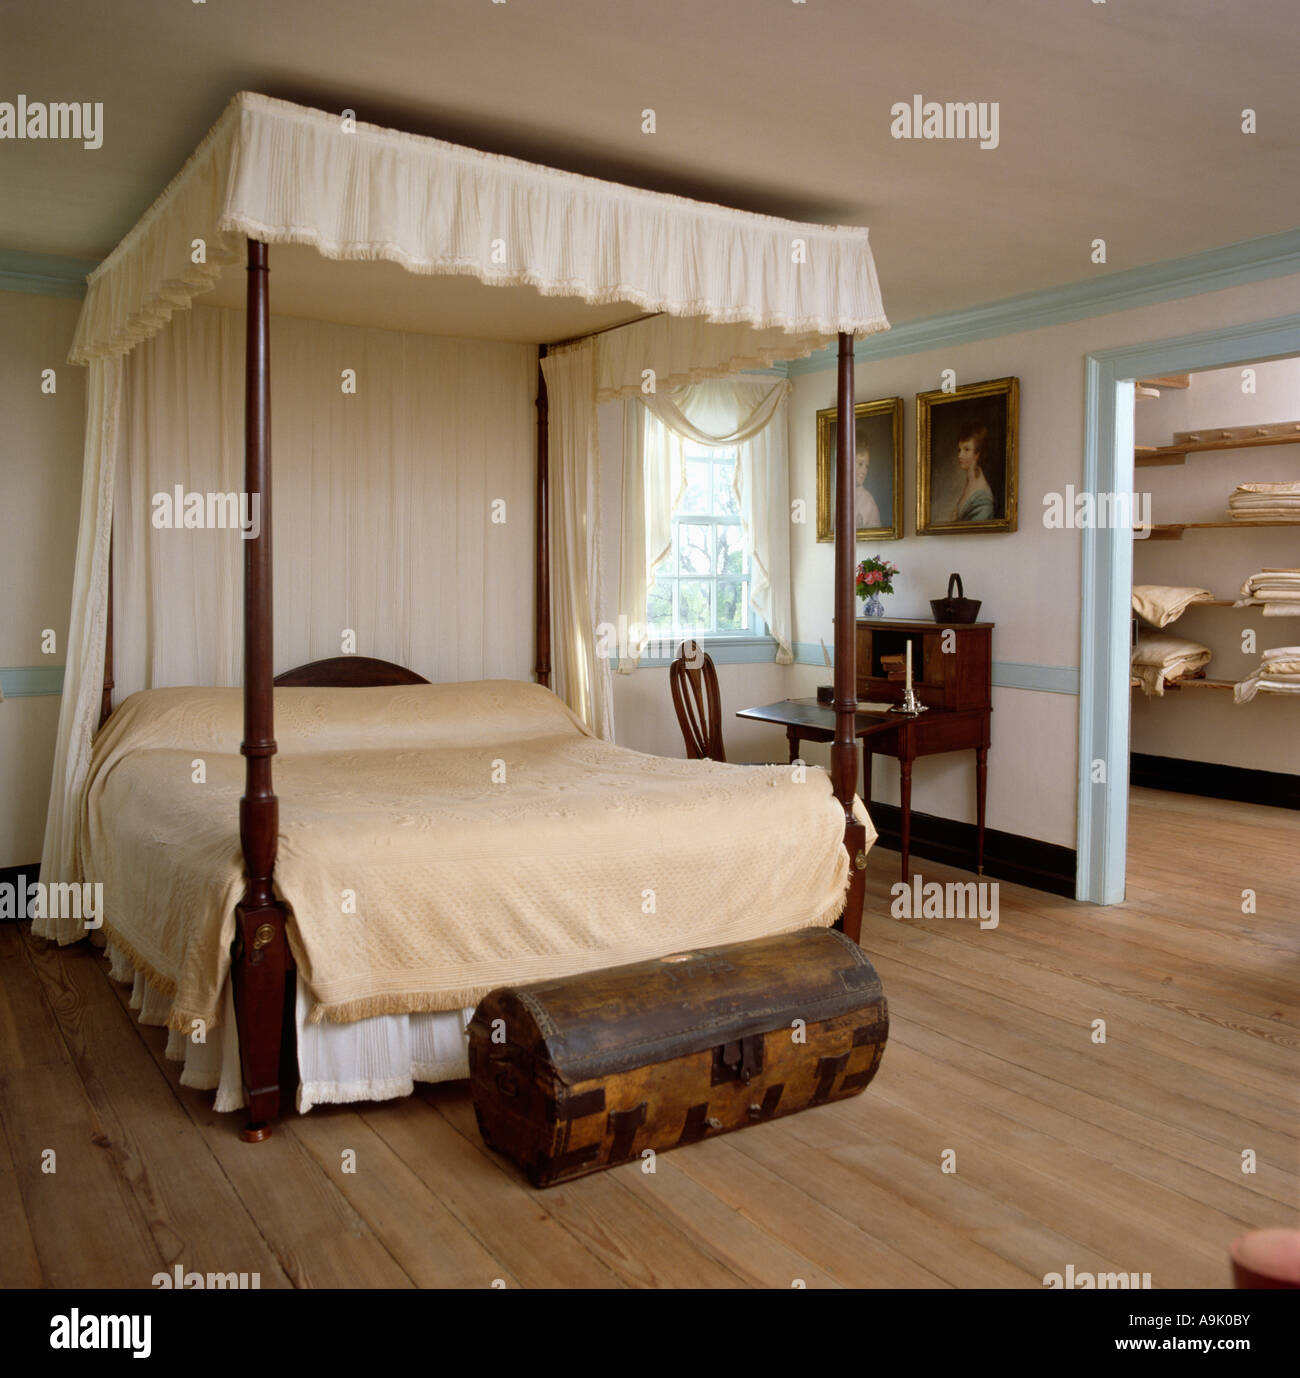 Antique Four Poster Bed With Cream Drapes And Linen In Country Stock Photo Royalty Free Image